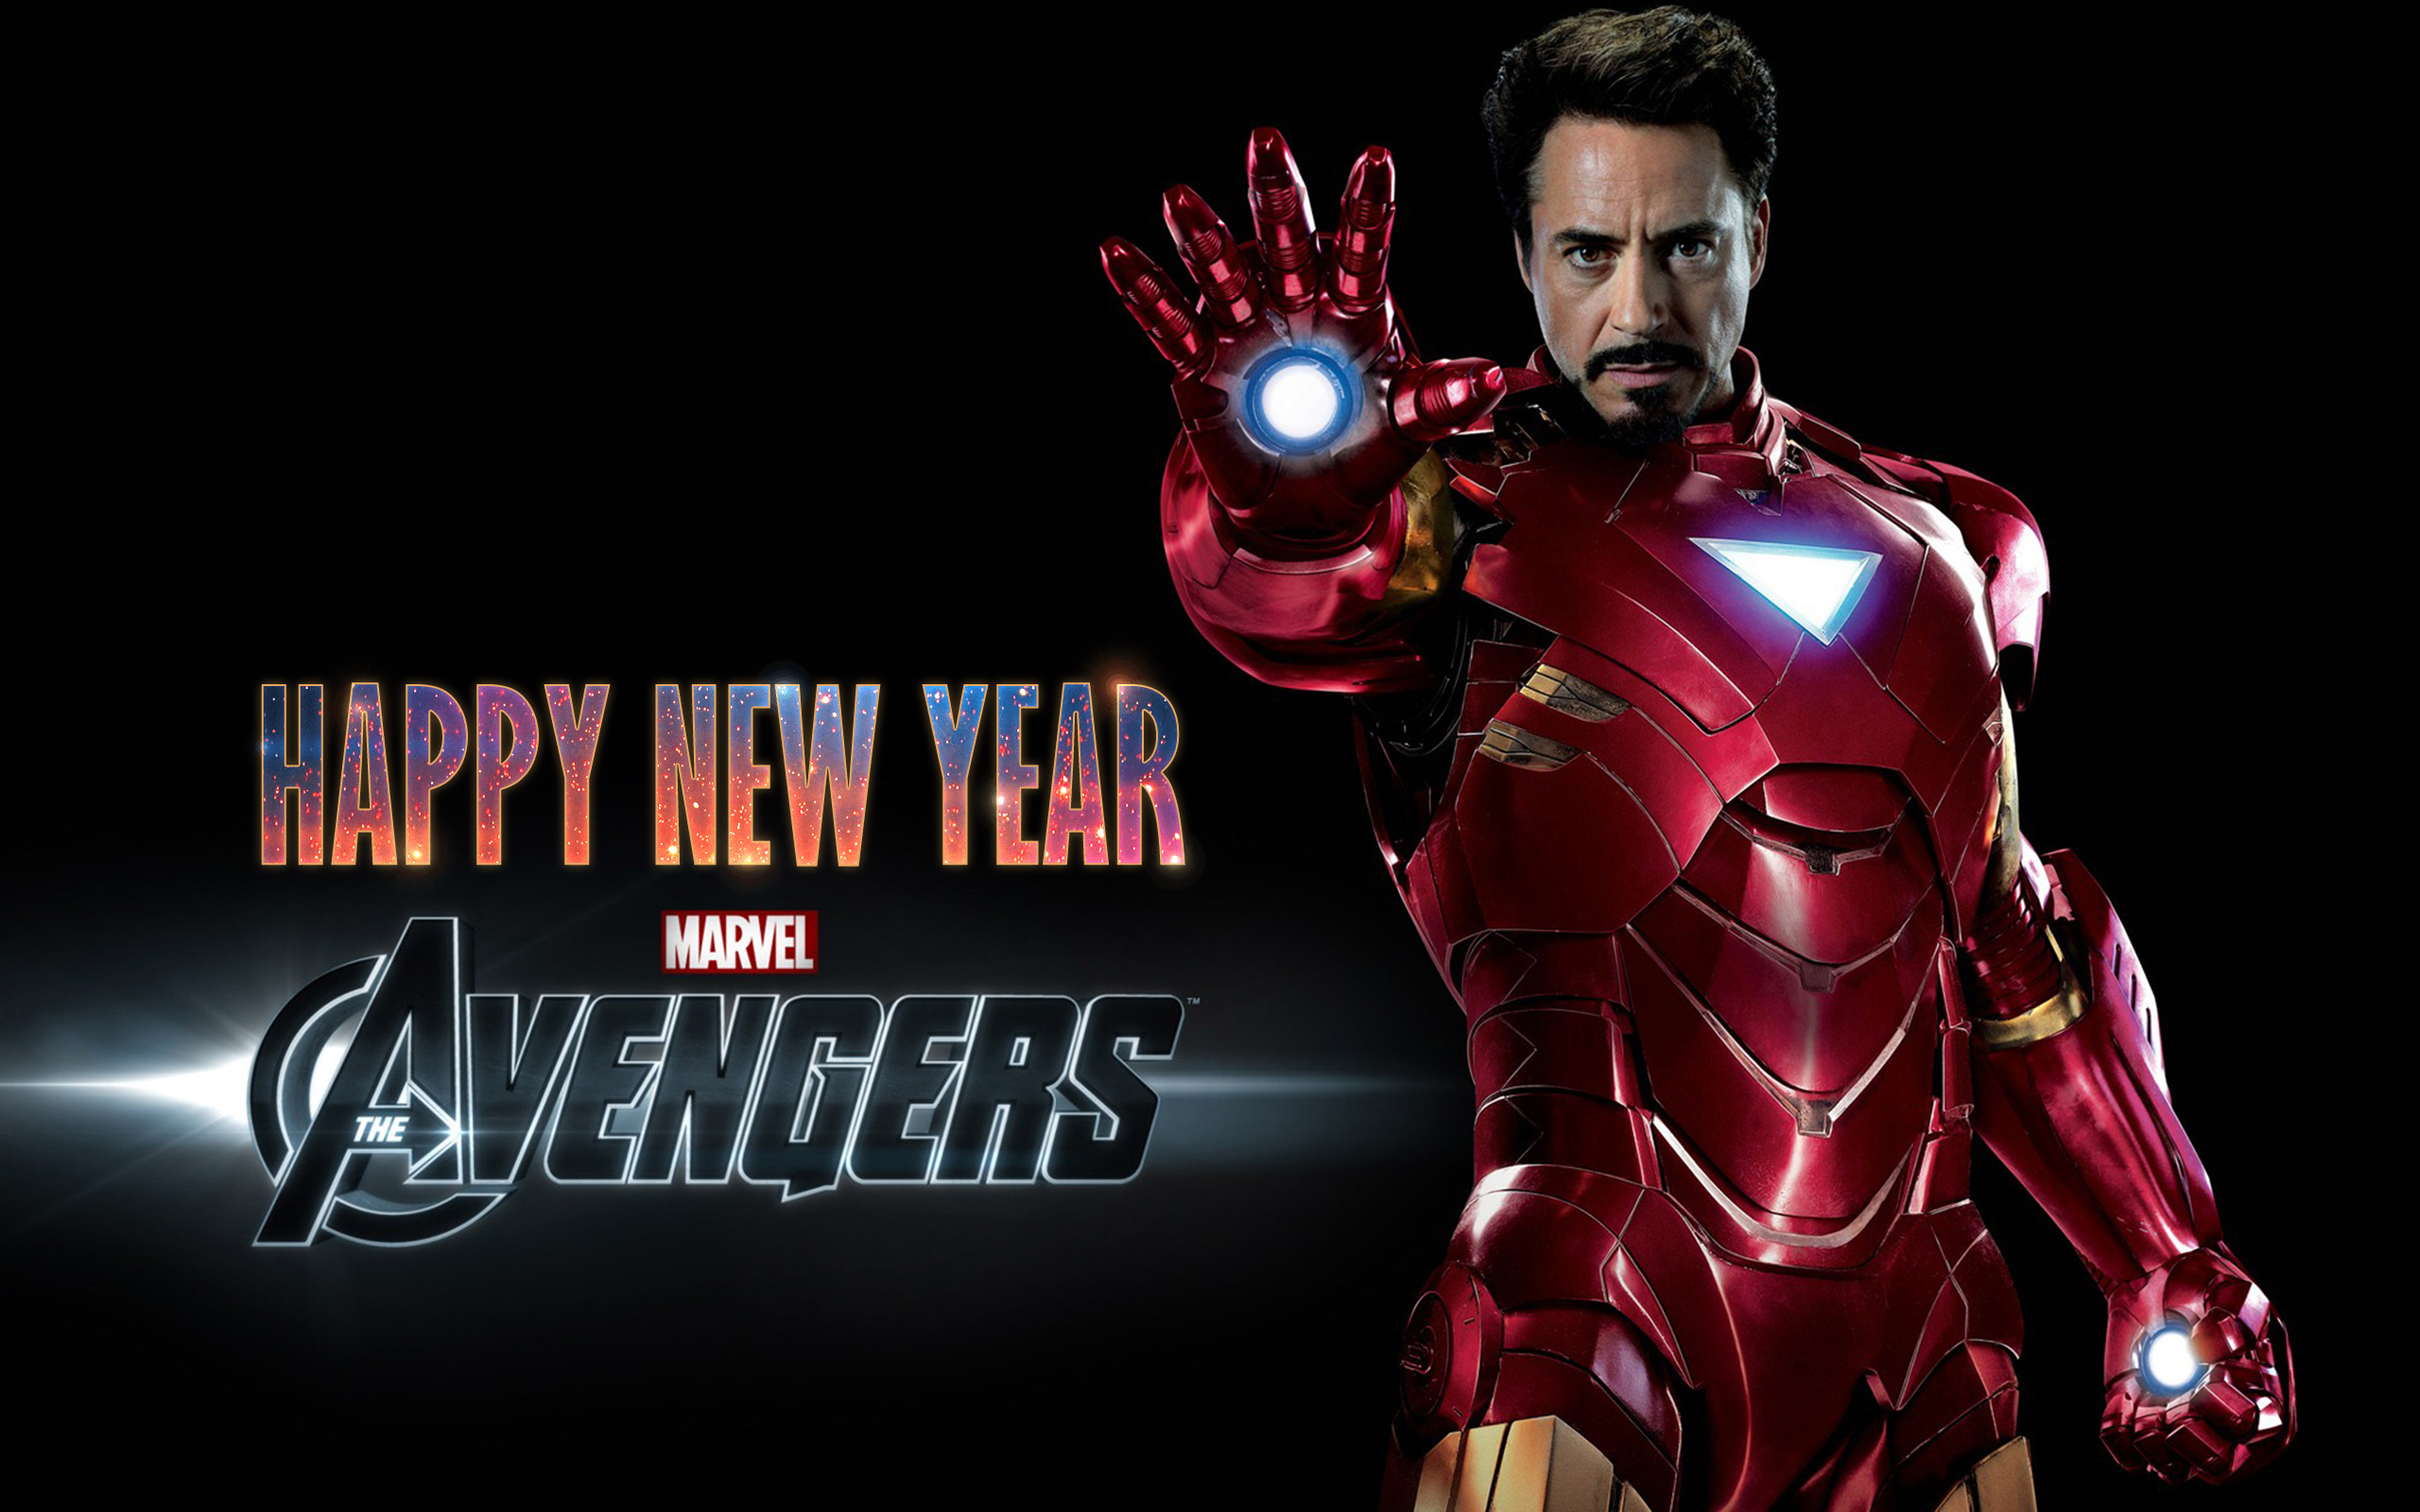 happy new year wishes super hero ironman kids hd wallpaper